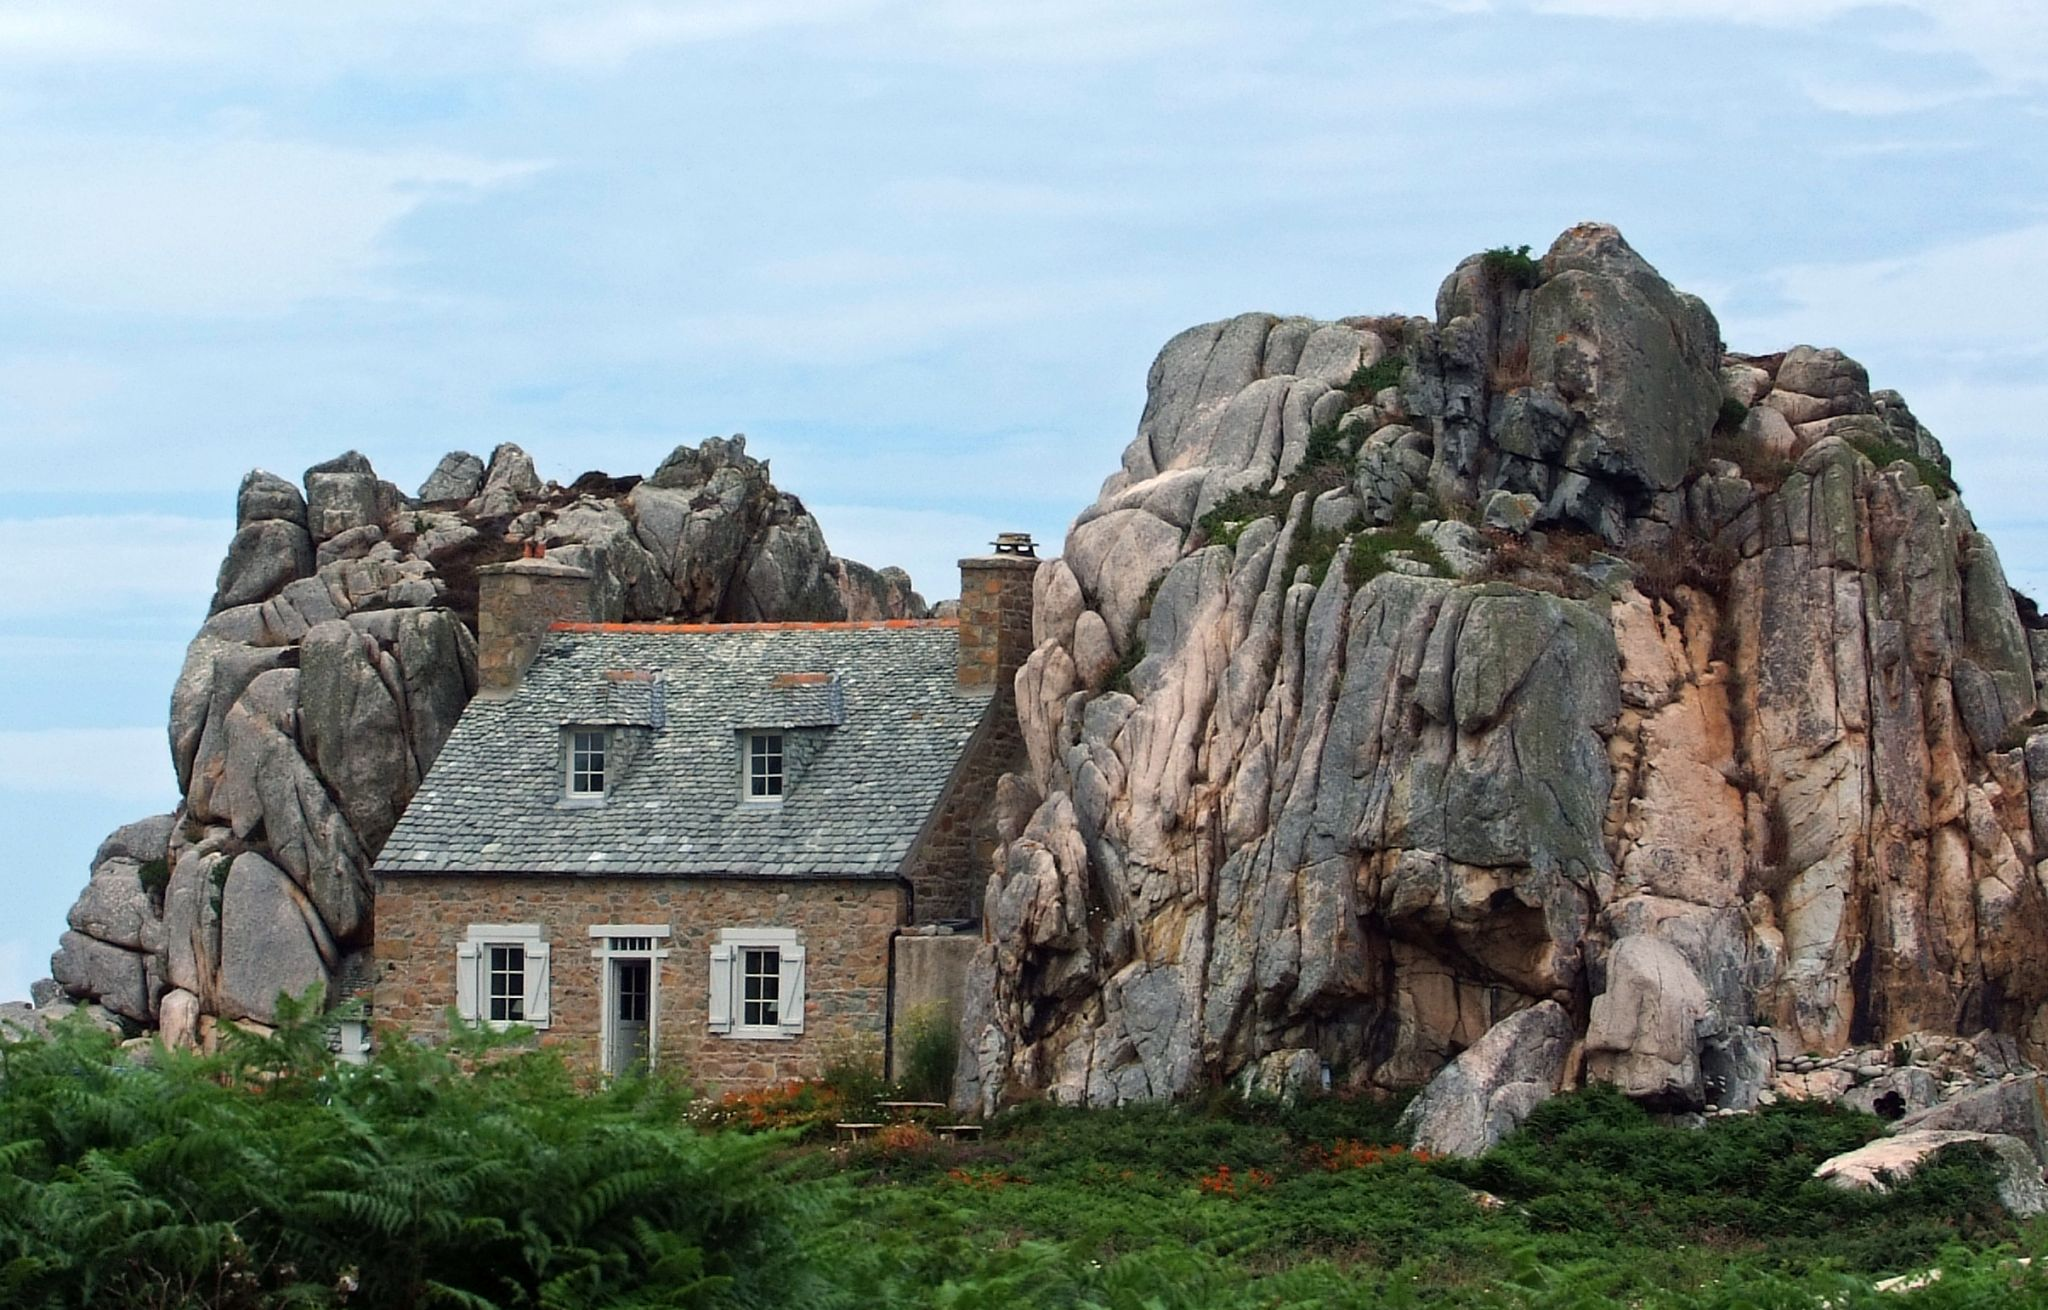 Plougrescant, Le Gouffre - The house between two rocks, France